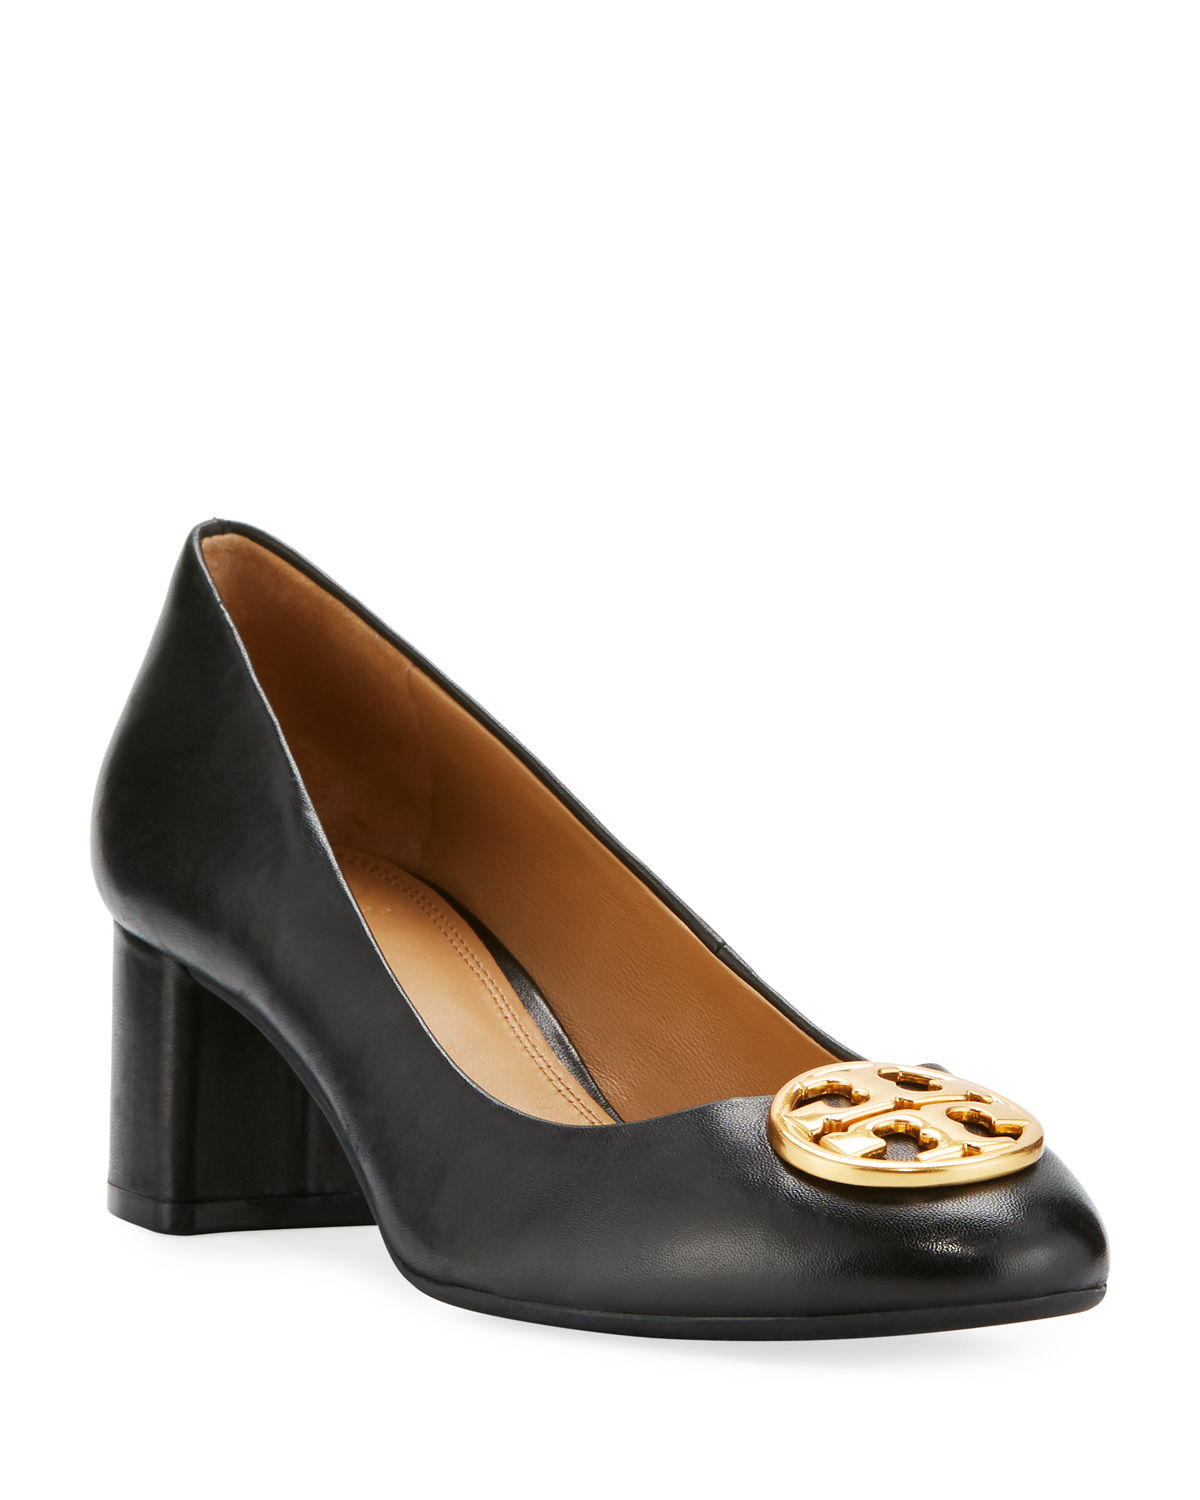 0fdf2c9057732 Tory Burch Chelsea Medallion 50mm Pump